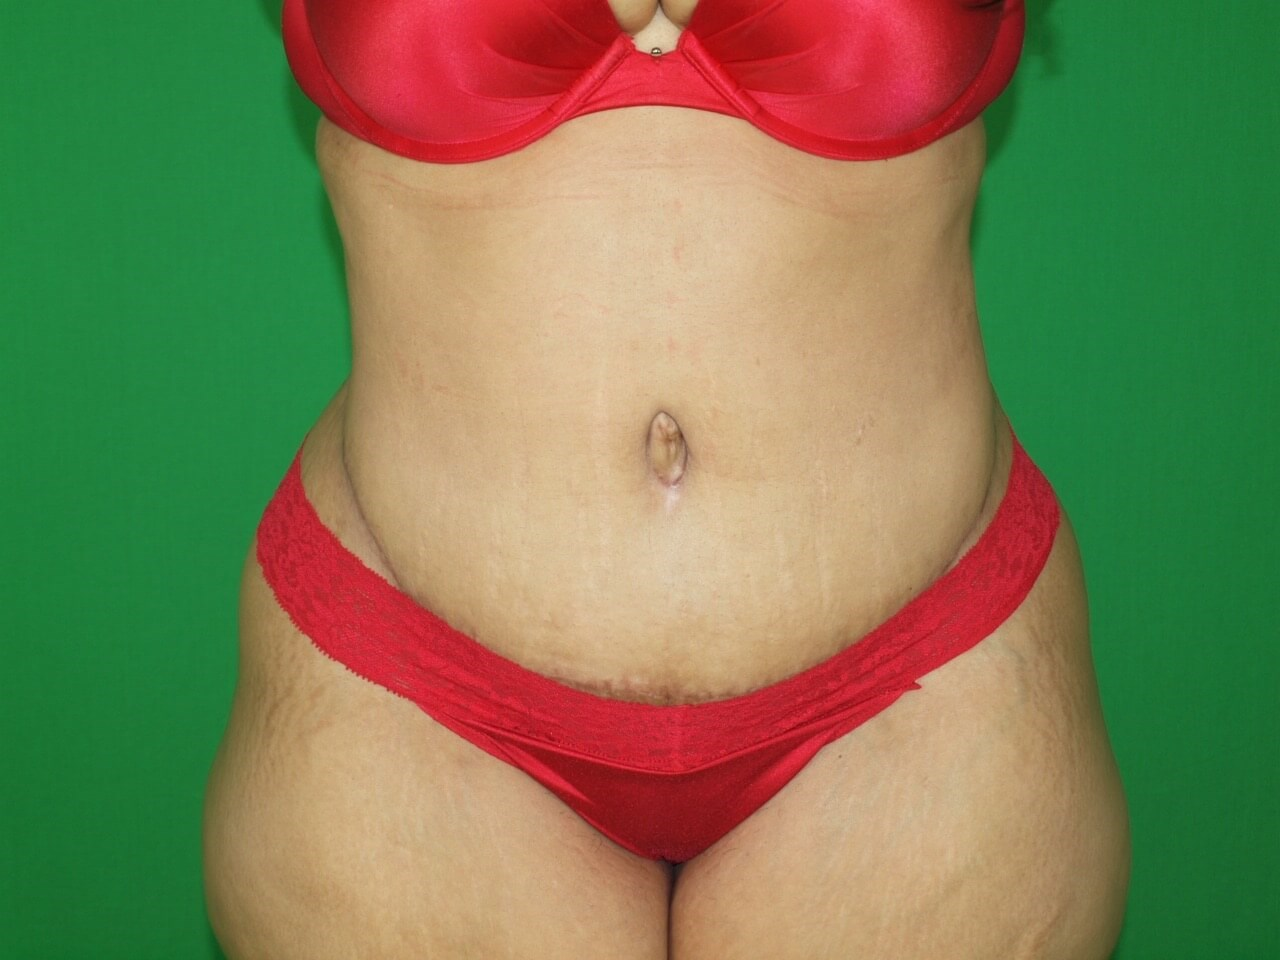 40 y.o. Seeking Sleek Abdomen After